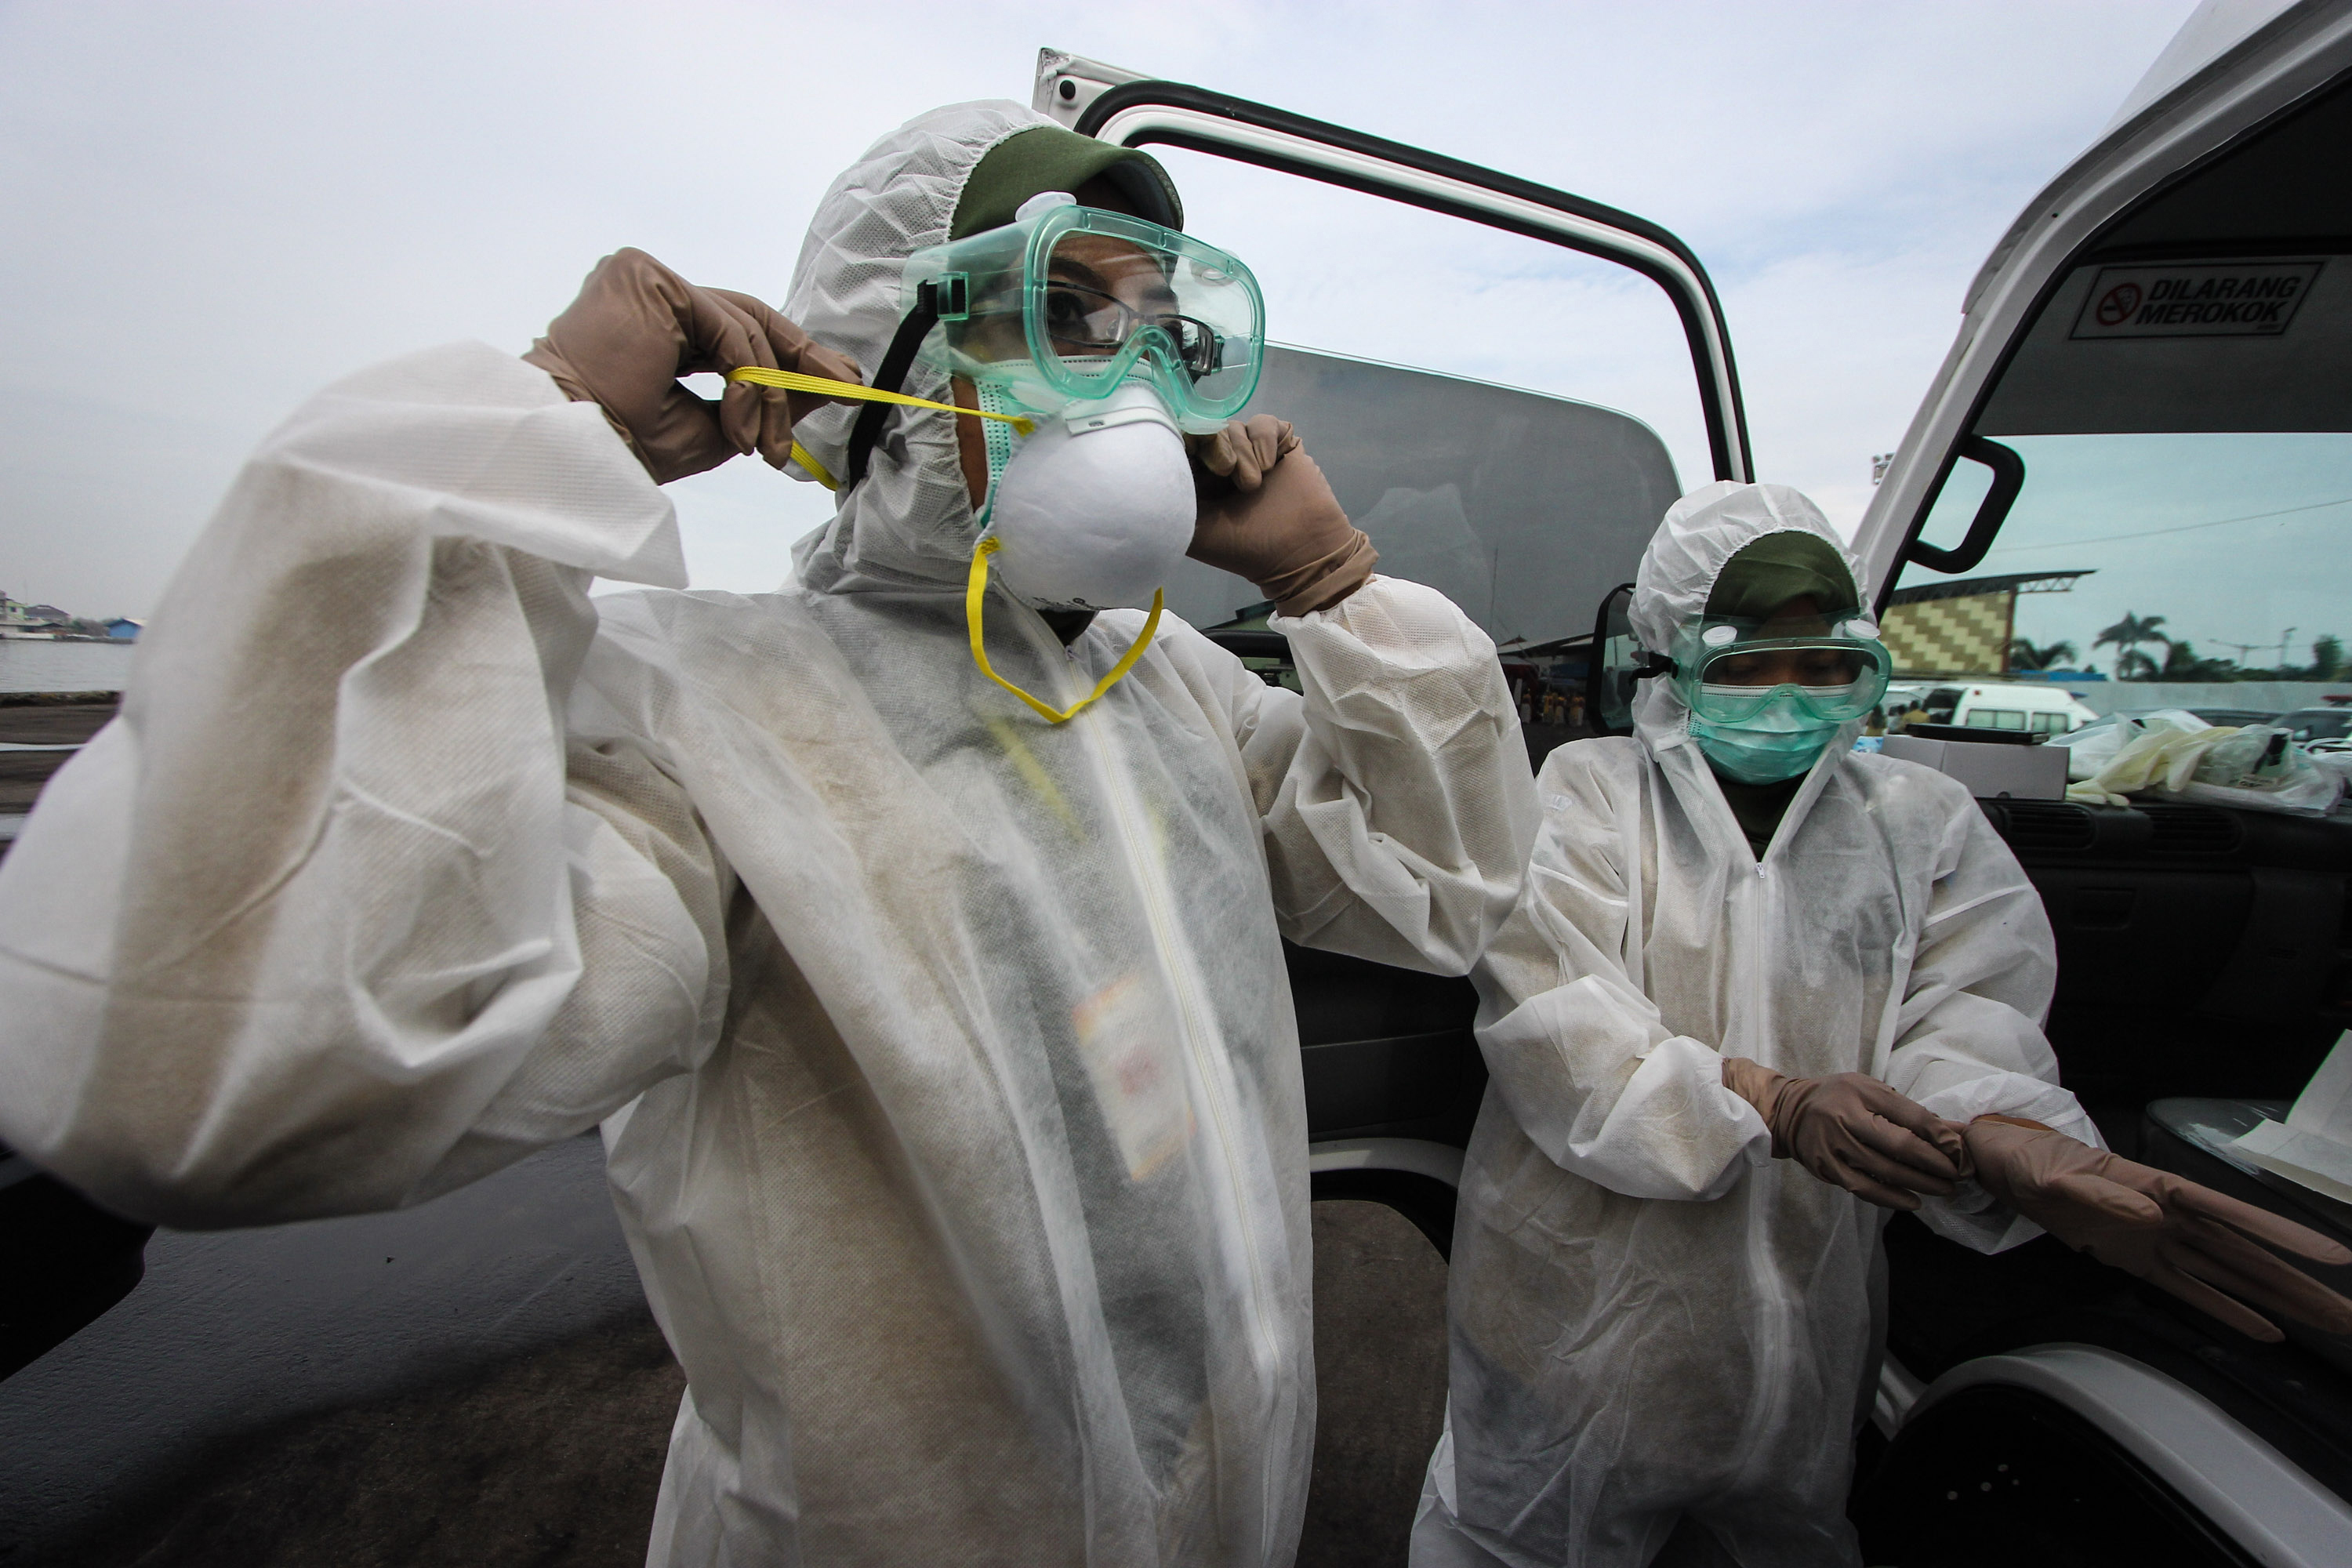 Google made a tablet for Ebola fighters that can be sanitized with chlorine